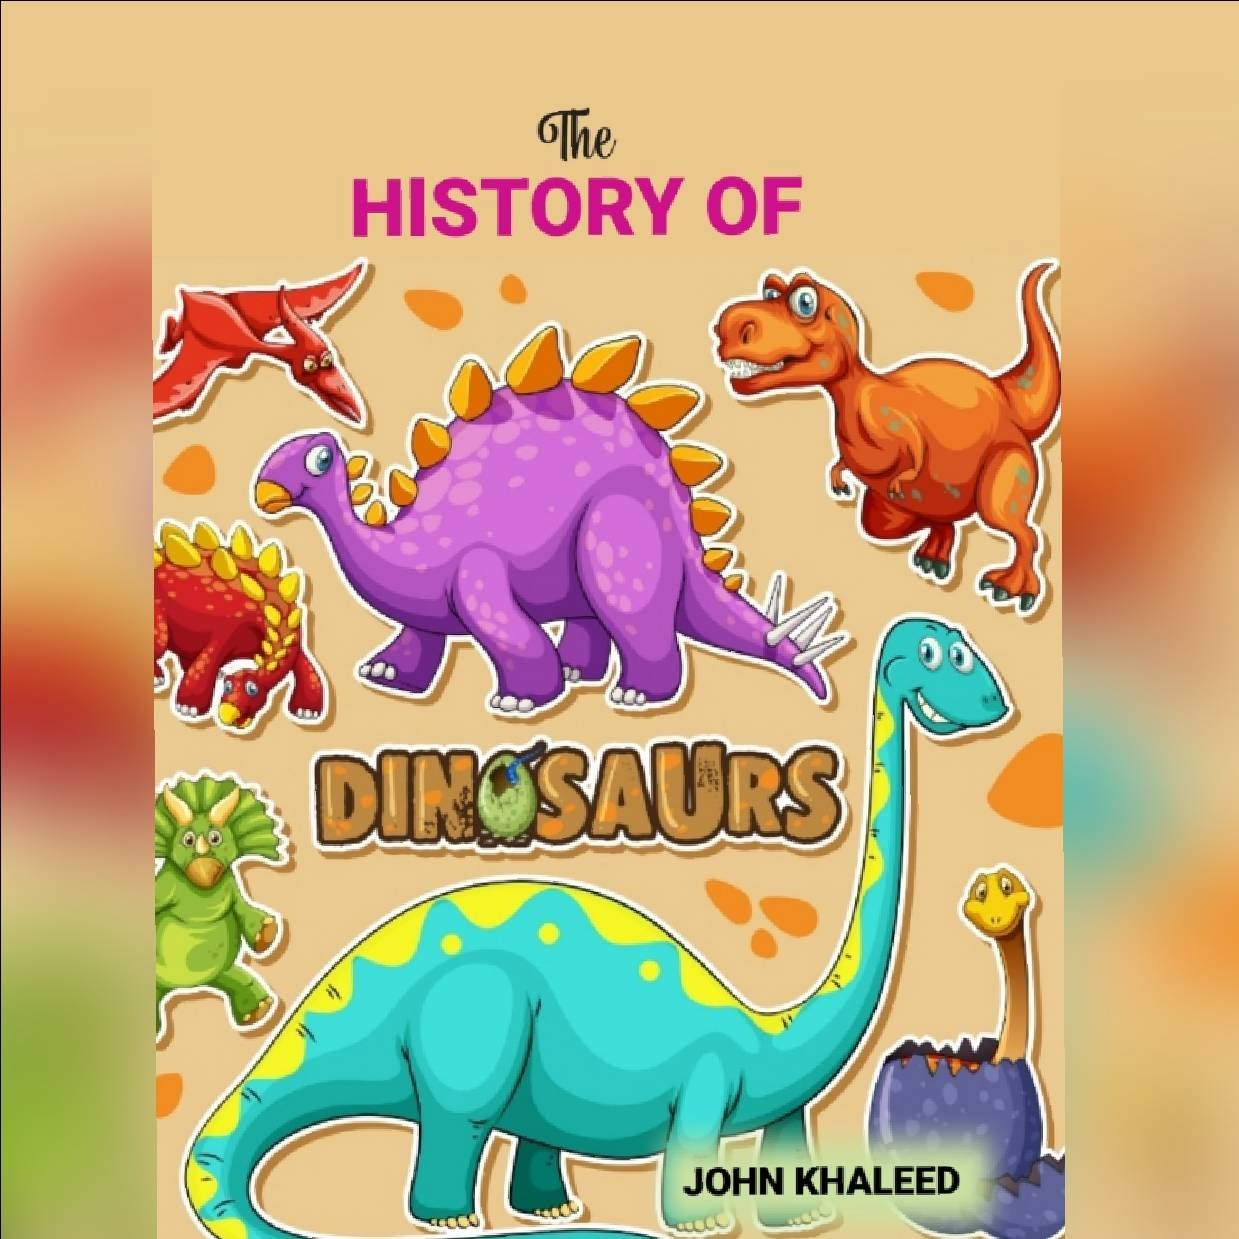 The History of Dinosaurs